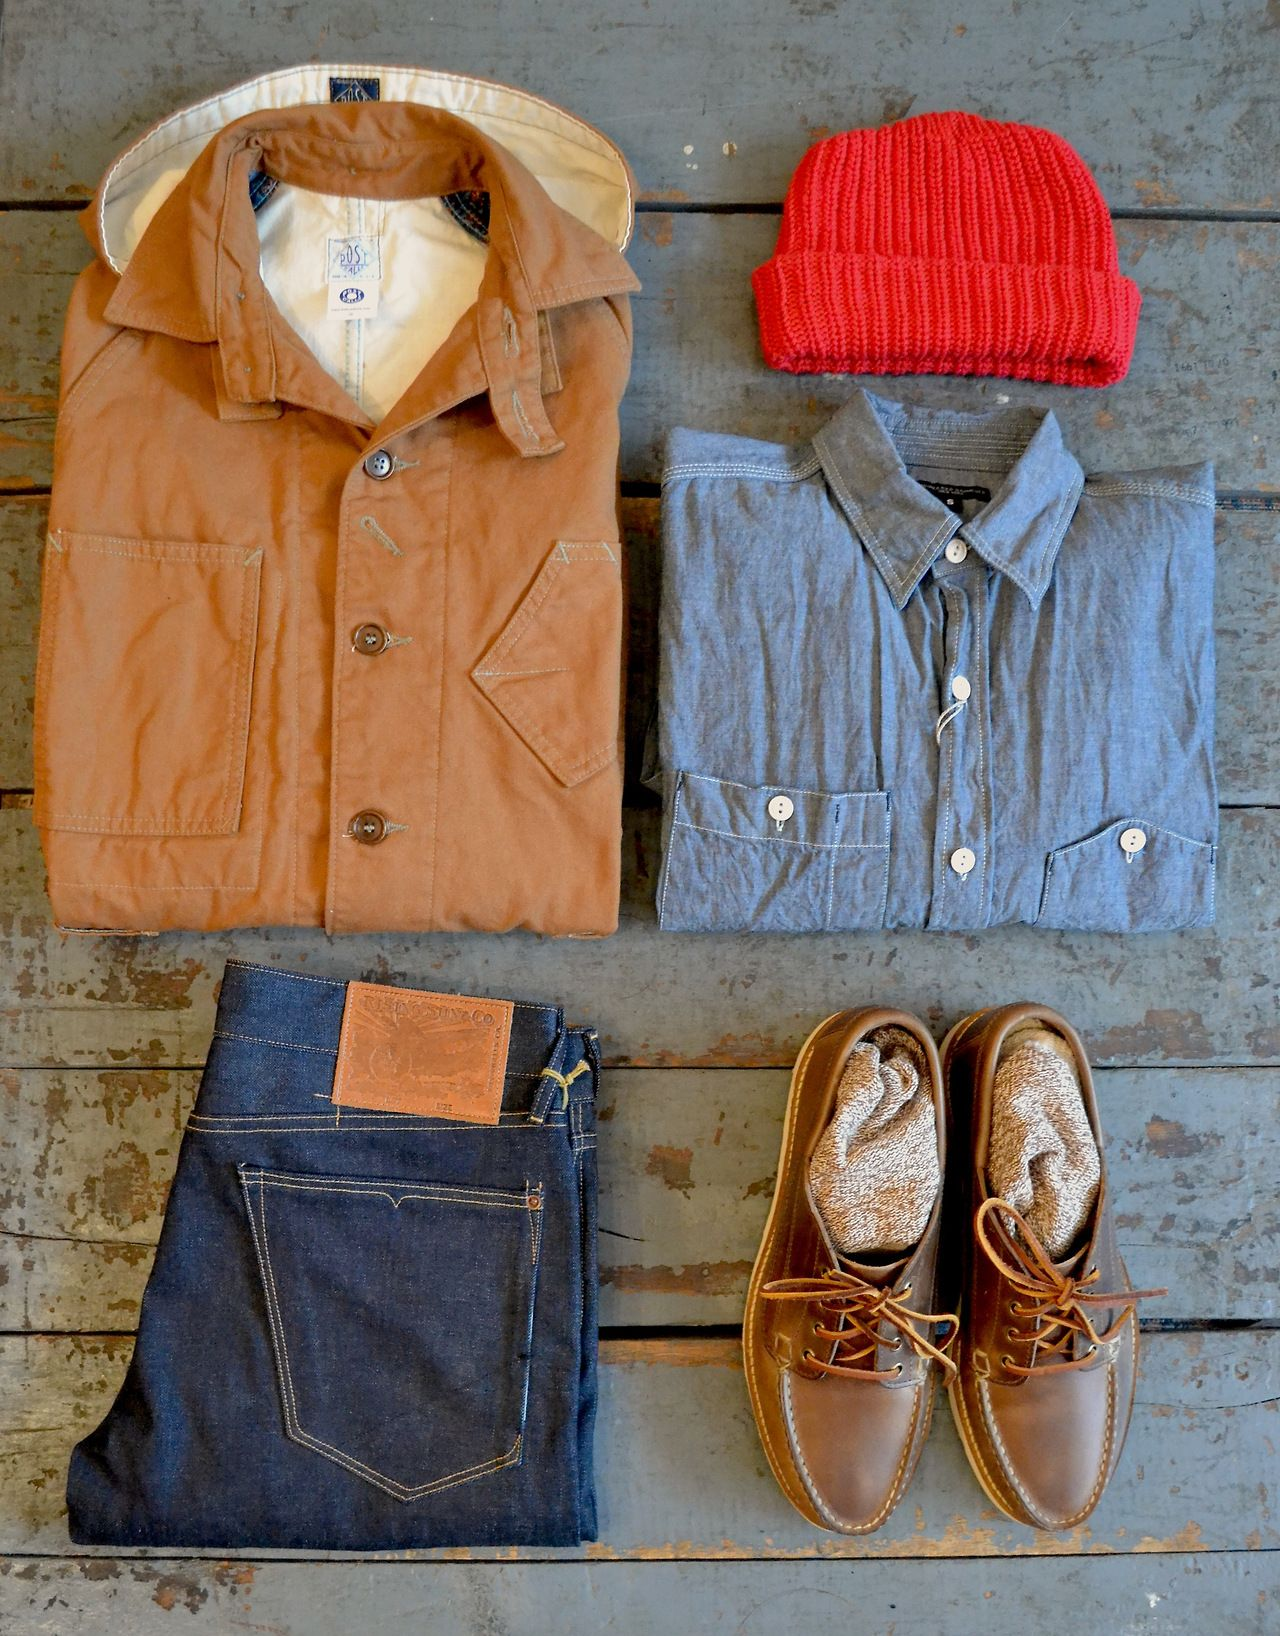 Post overalls sweet bear jacket engineered garments for Bear river workwear shirts